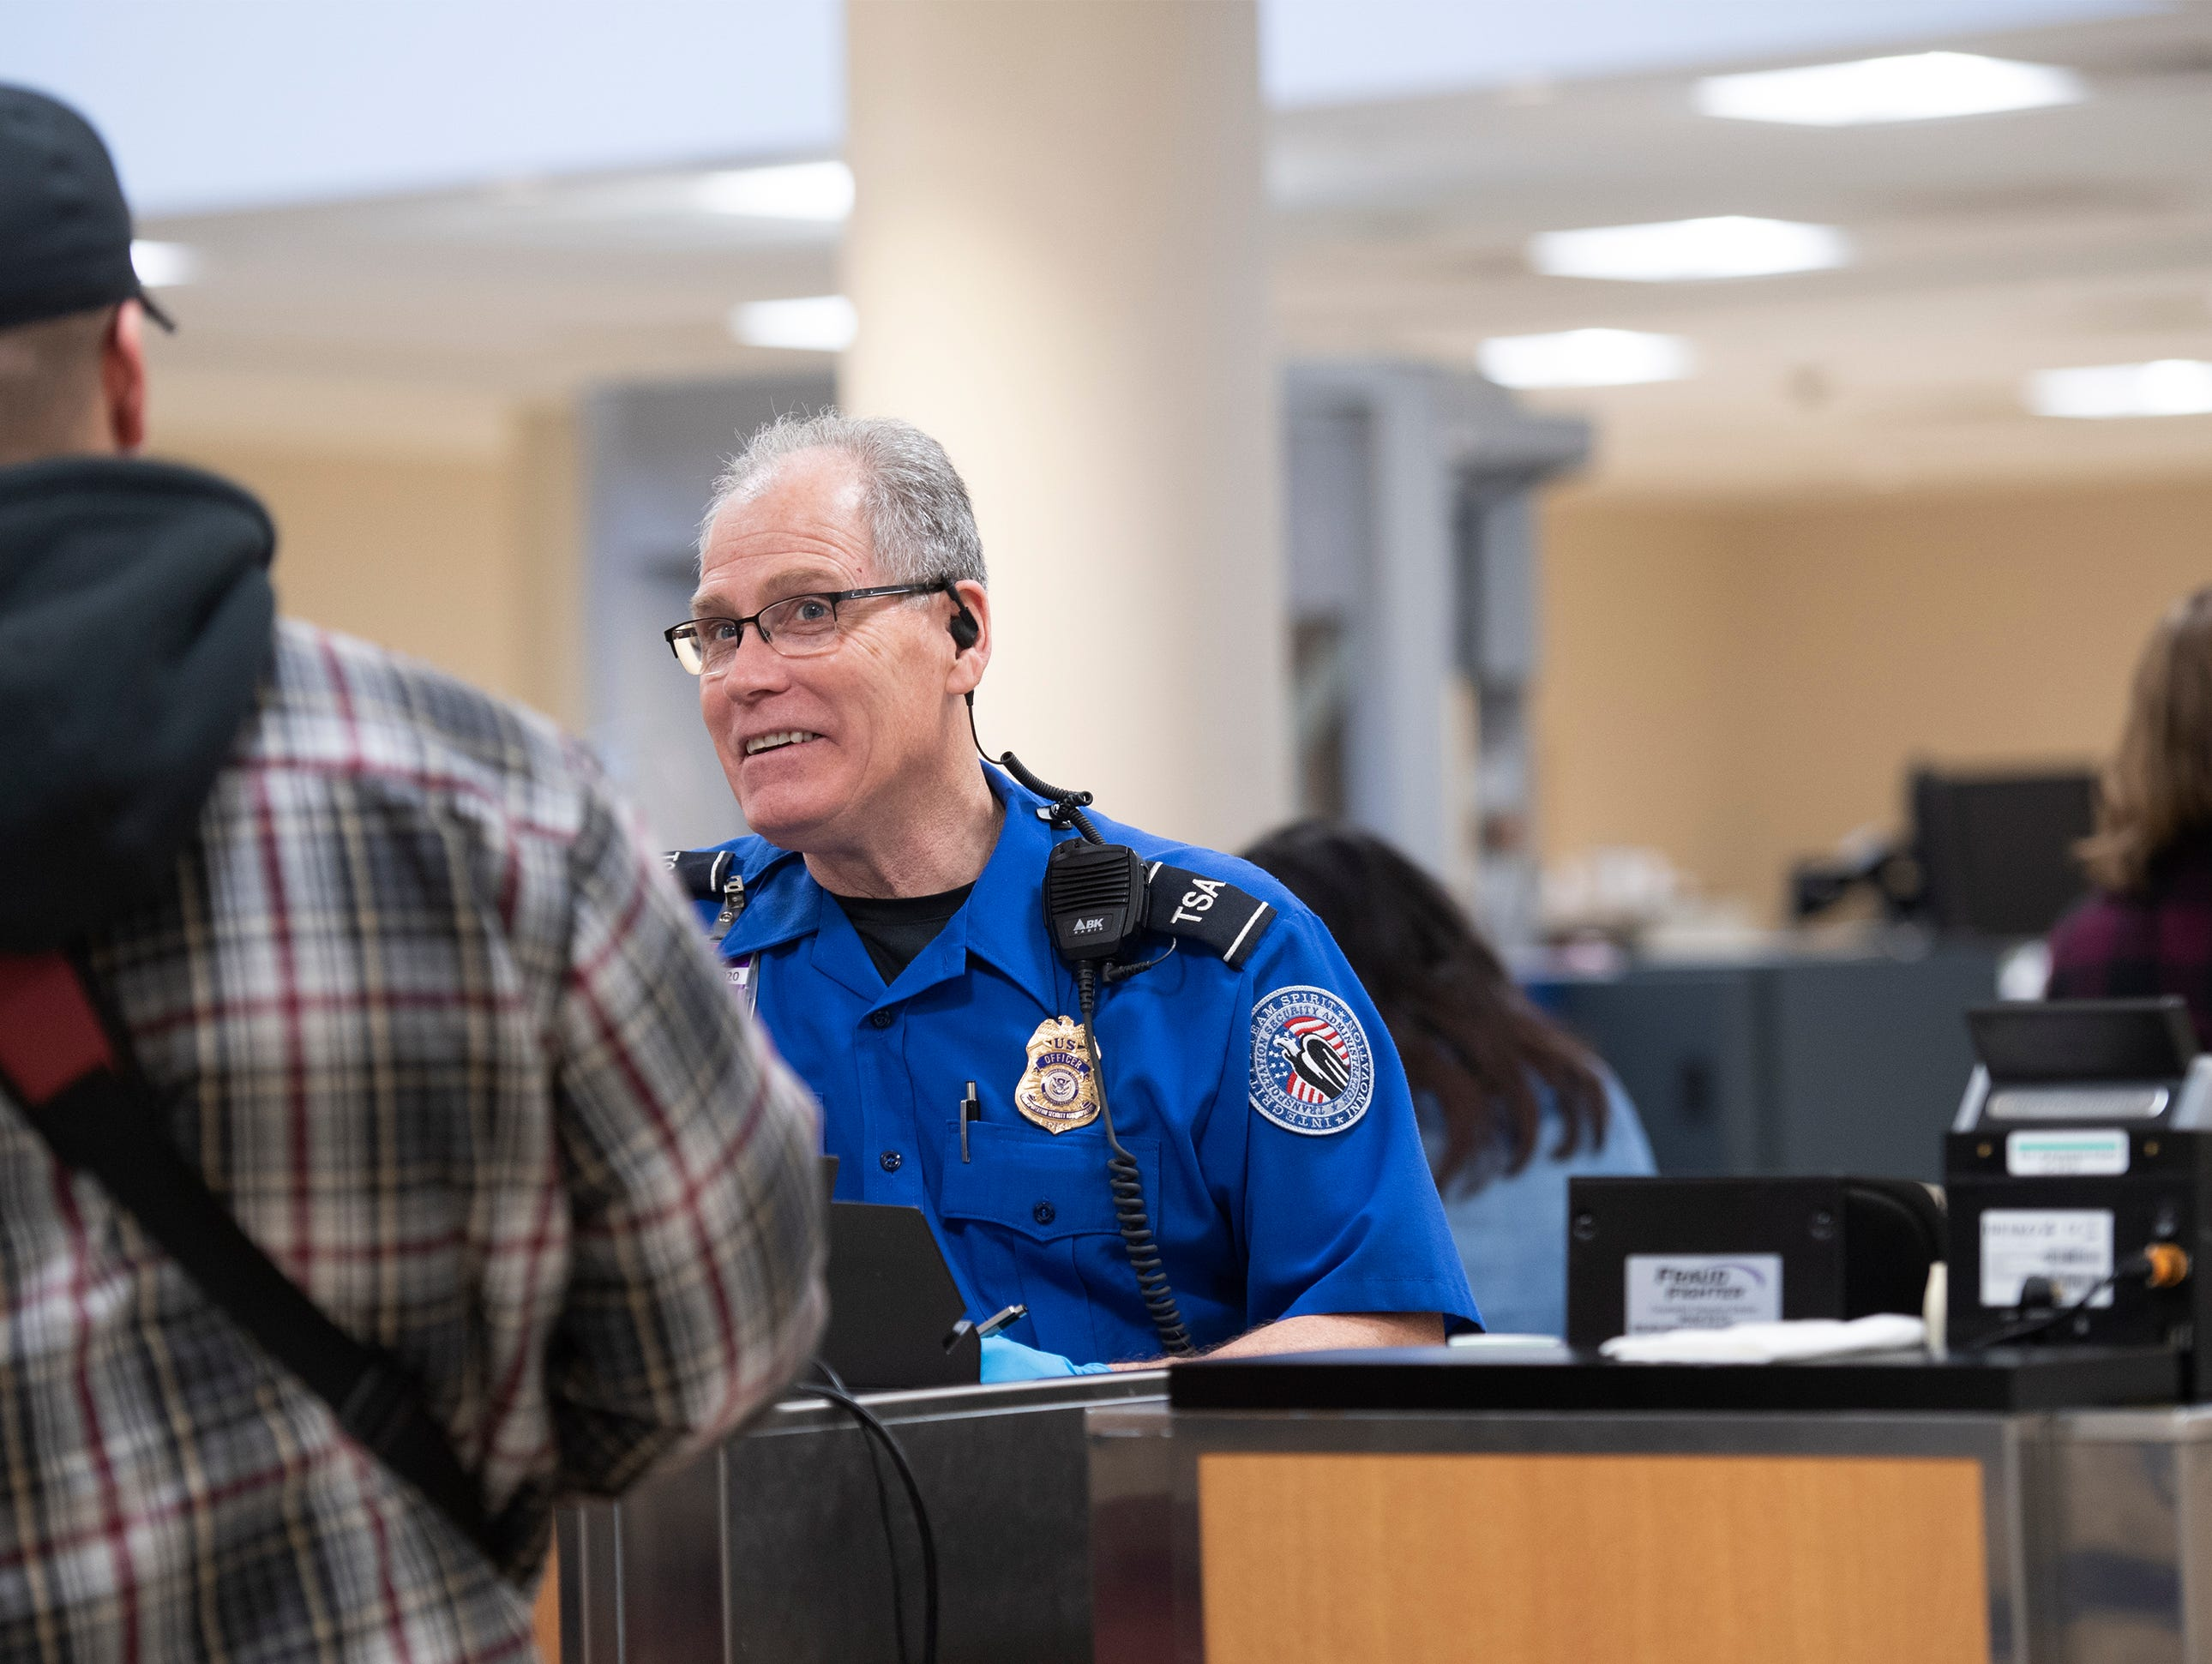 Transportation Security Administration employees screen passengers and their belongings at GreenvilleÐSpartanburg International Airport Wednesday, Jan. 23, 2019.